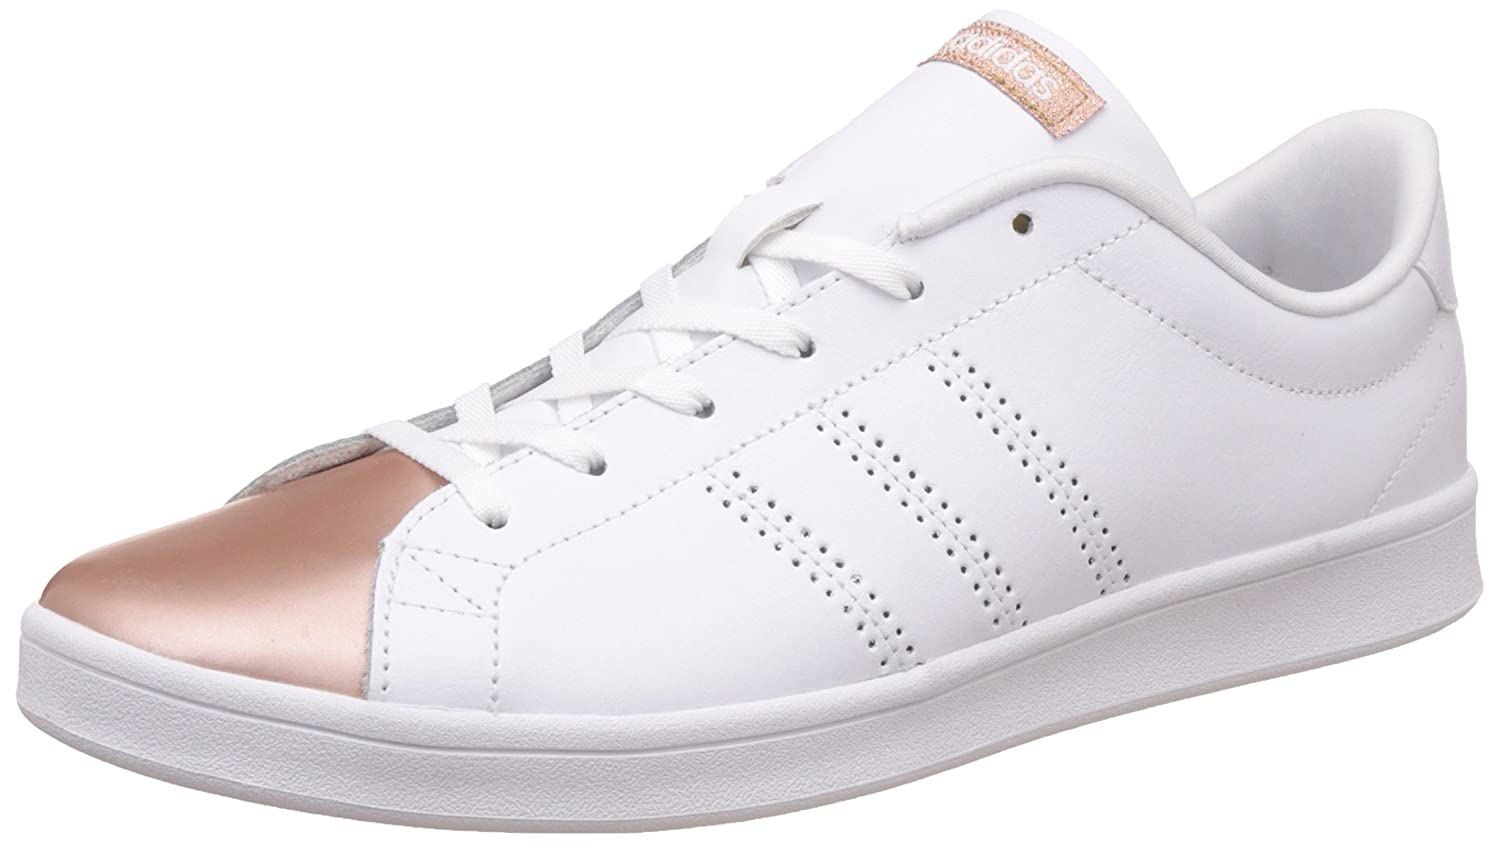 super popular 5a653 272f9 adidas Damen Advantage Clean QT Sneakers 36 EUElfenbein  (FtwblaFtwblaCobmet) - associate-degree.de